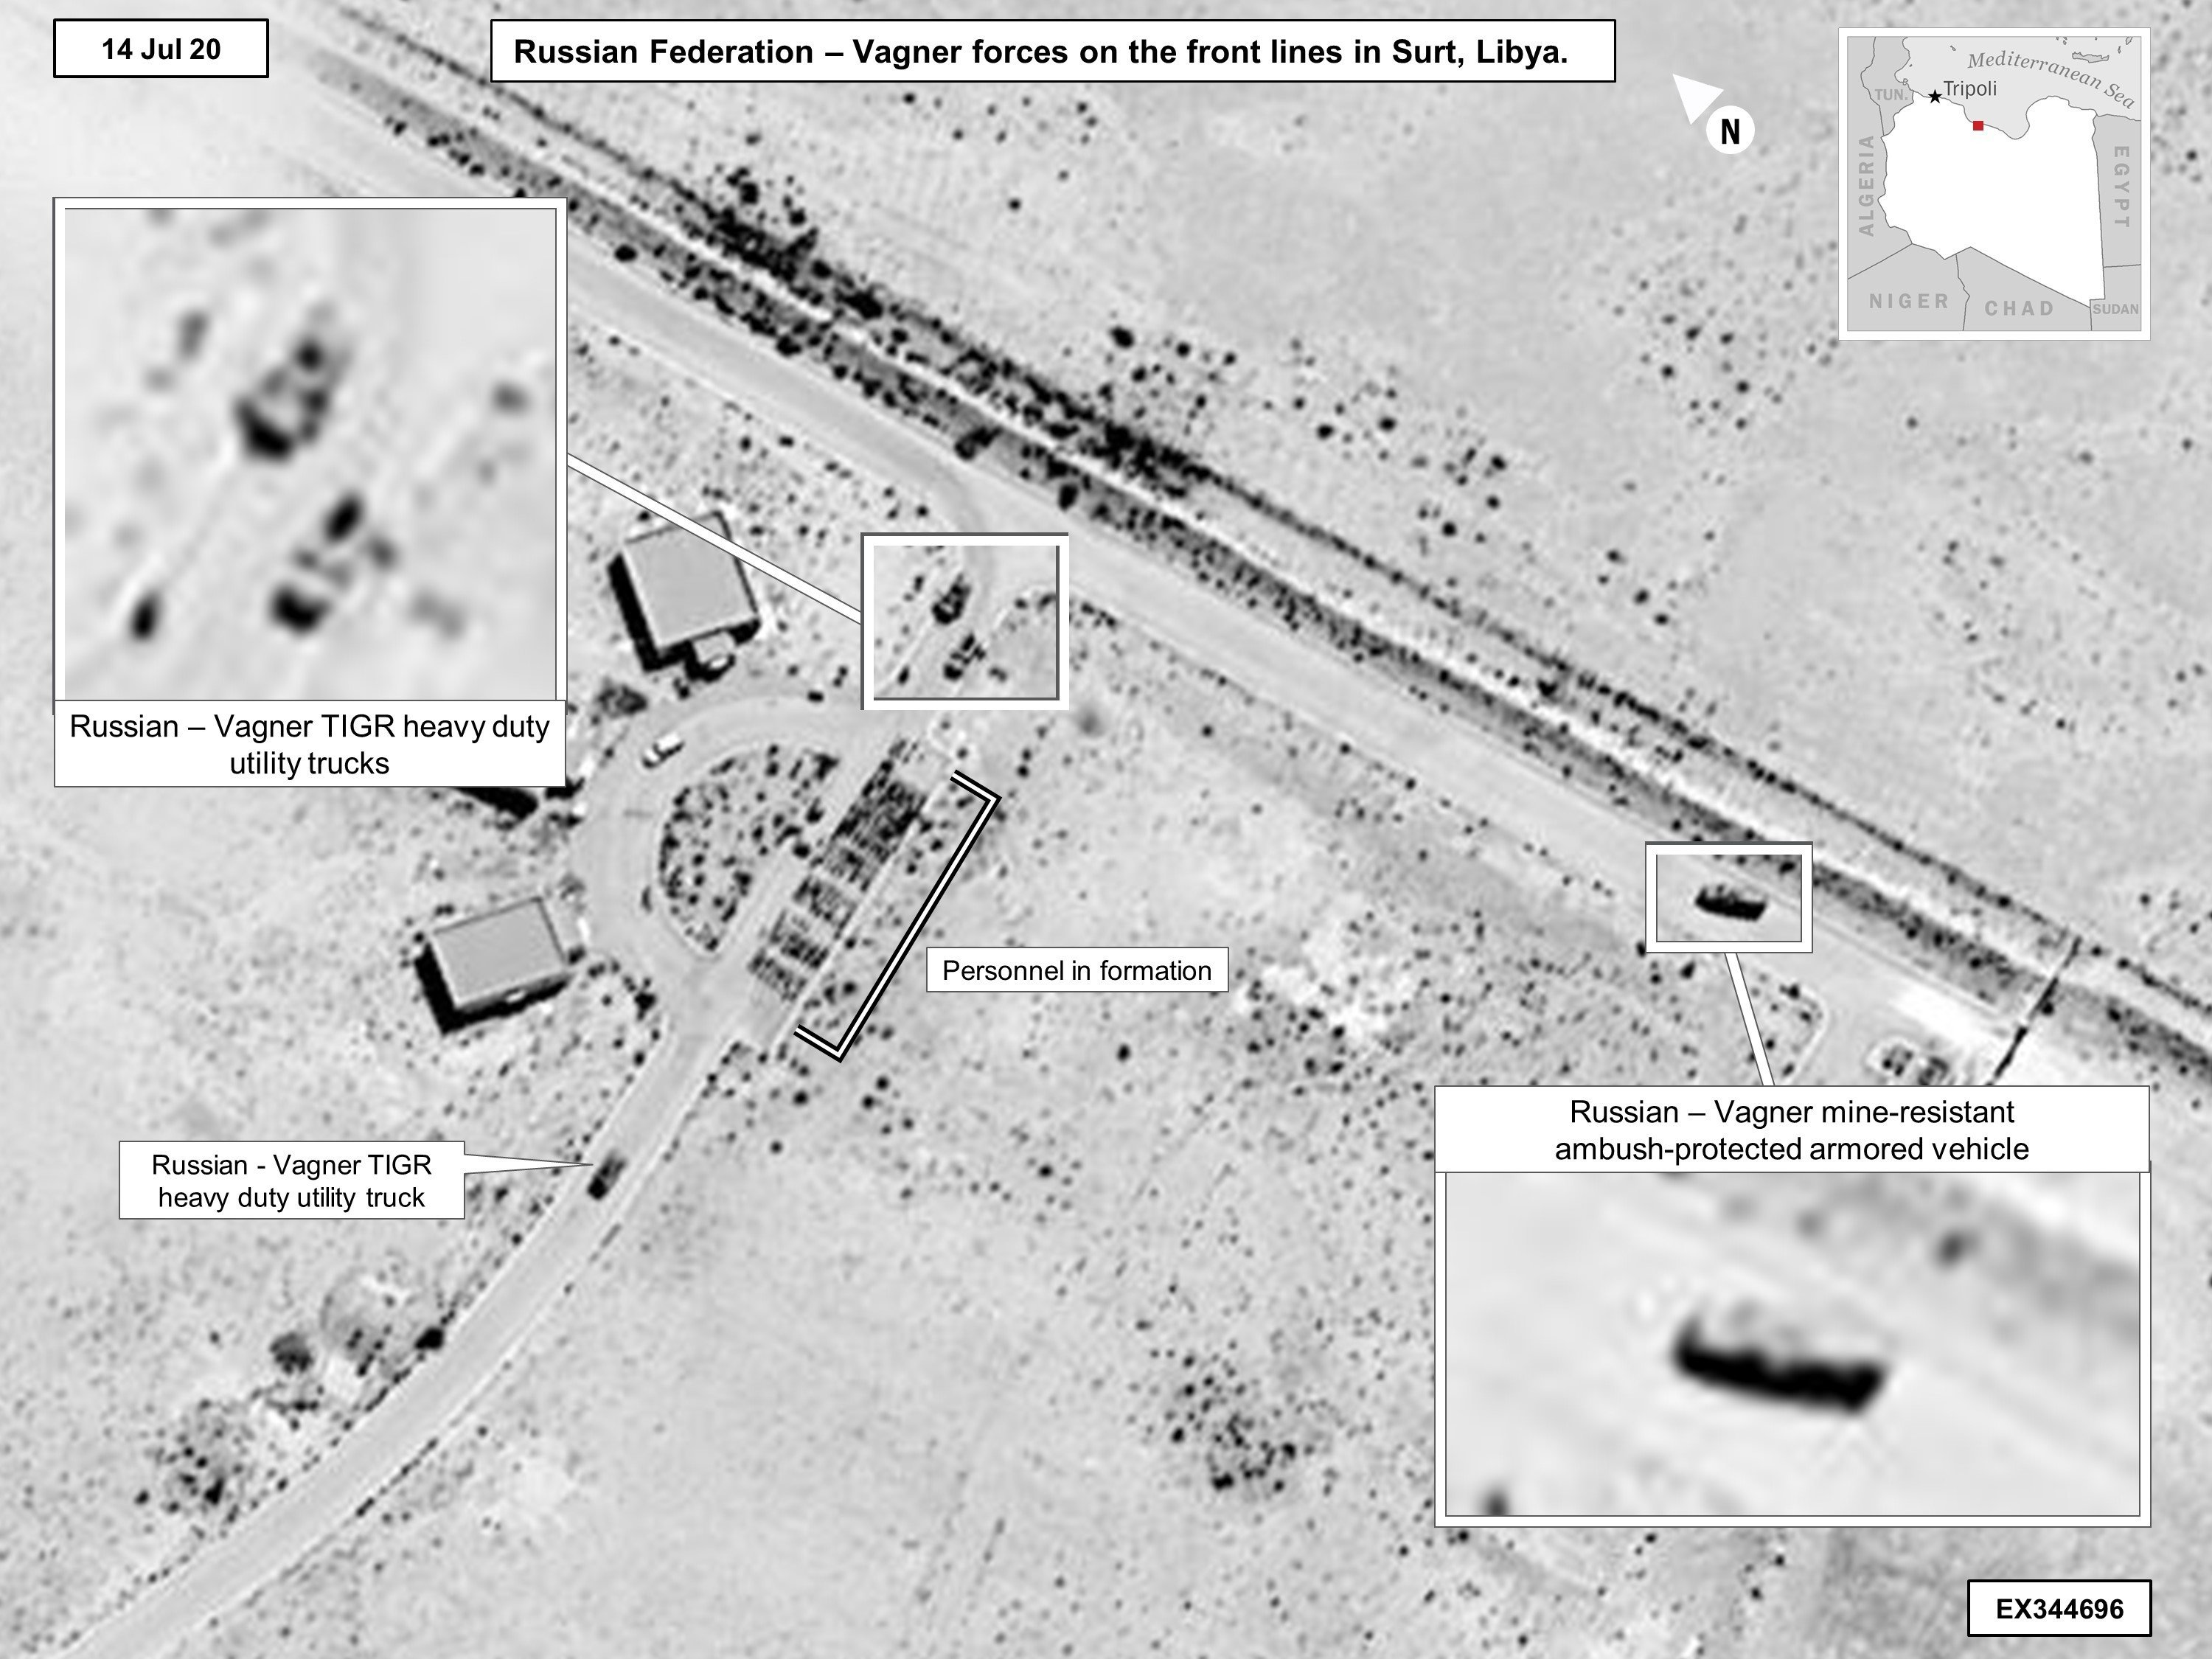 This 14 July, 2020, satellite image released by the US reportedly shows Wagner utility trucks and Russian mine-resistant, ambush-protected armoured vehicles in Sirte, Libya (AFP)